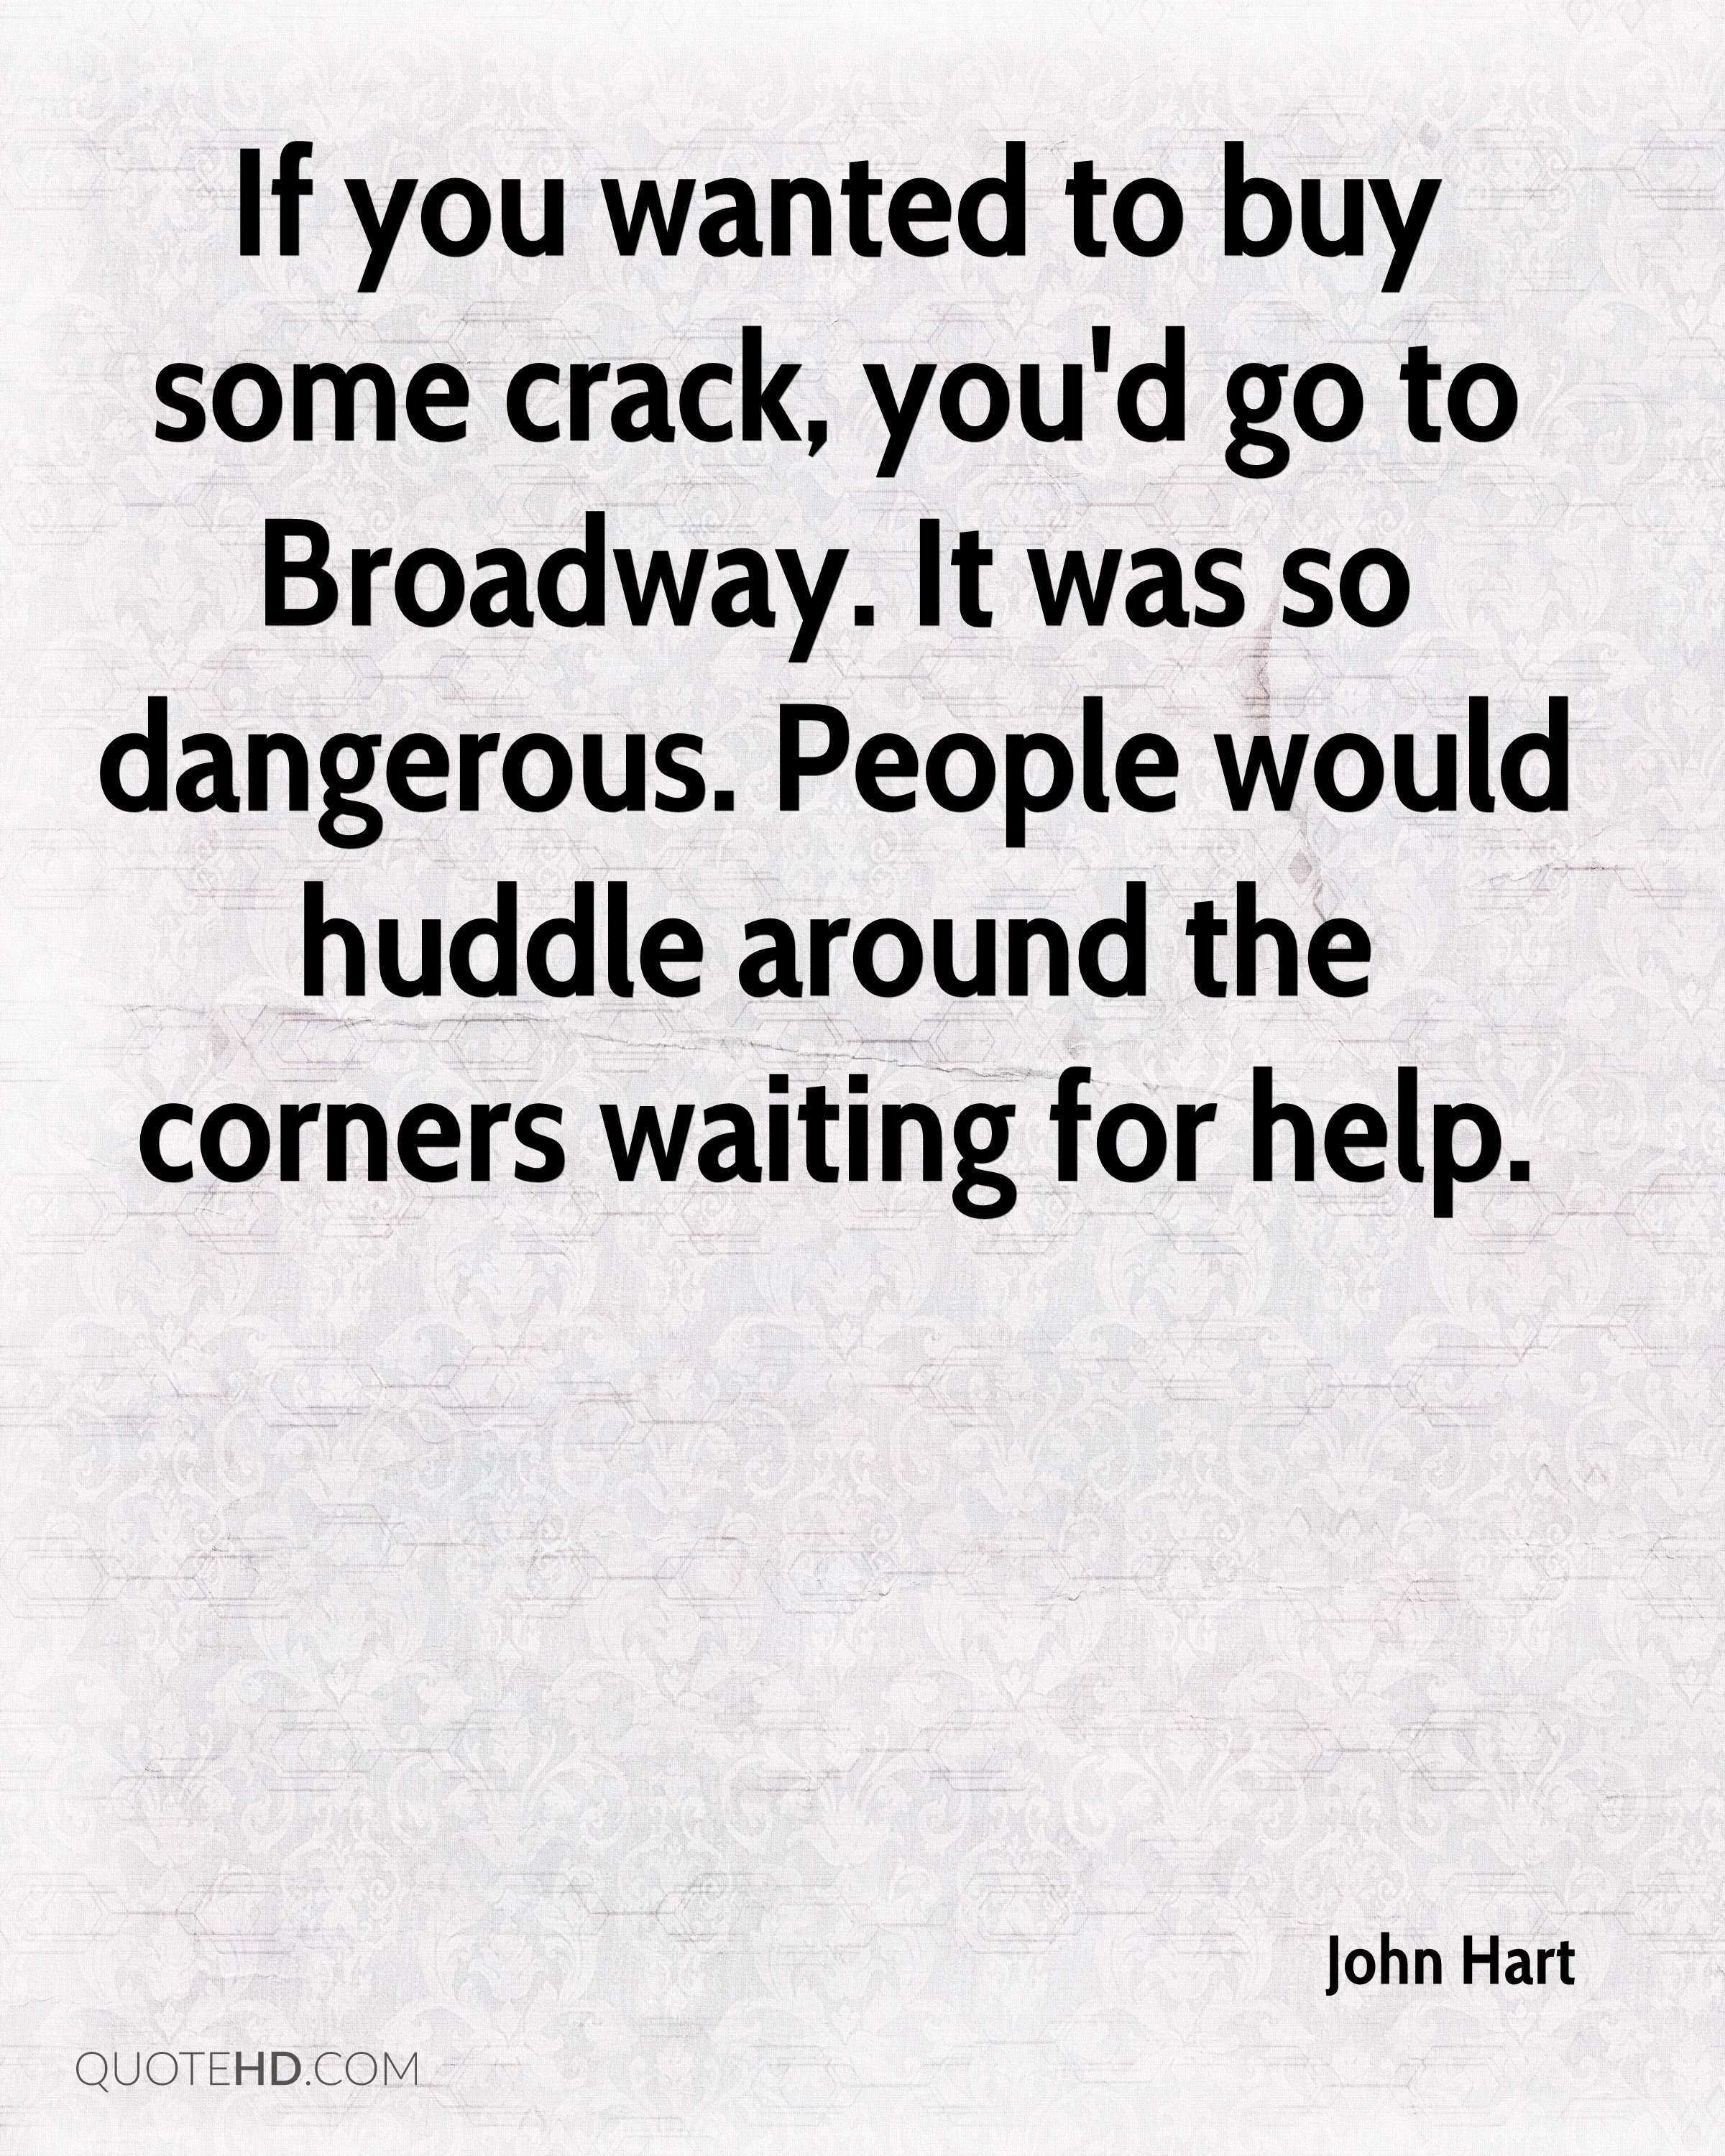 If you wanted to buy some crack, you'd go to Broadway. It was so dangerous. People would huddle around the corners waiting for help.